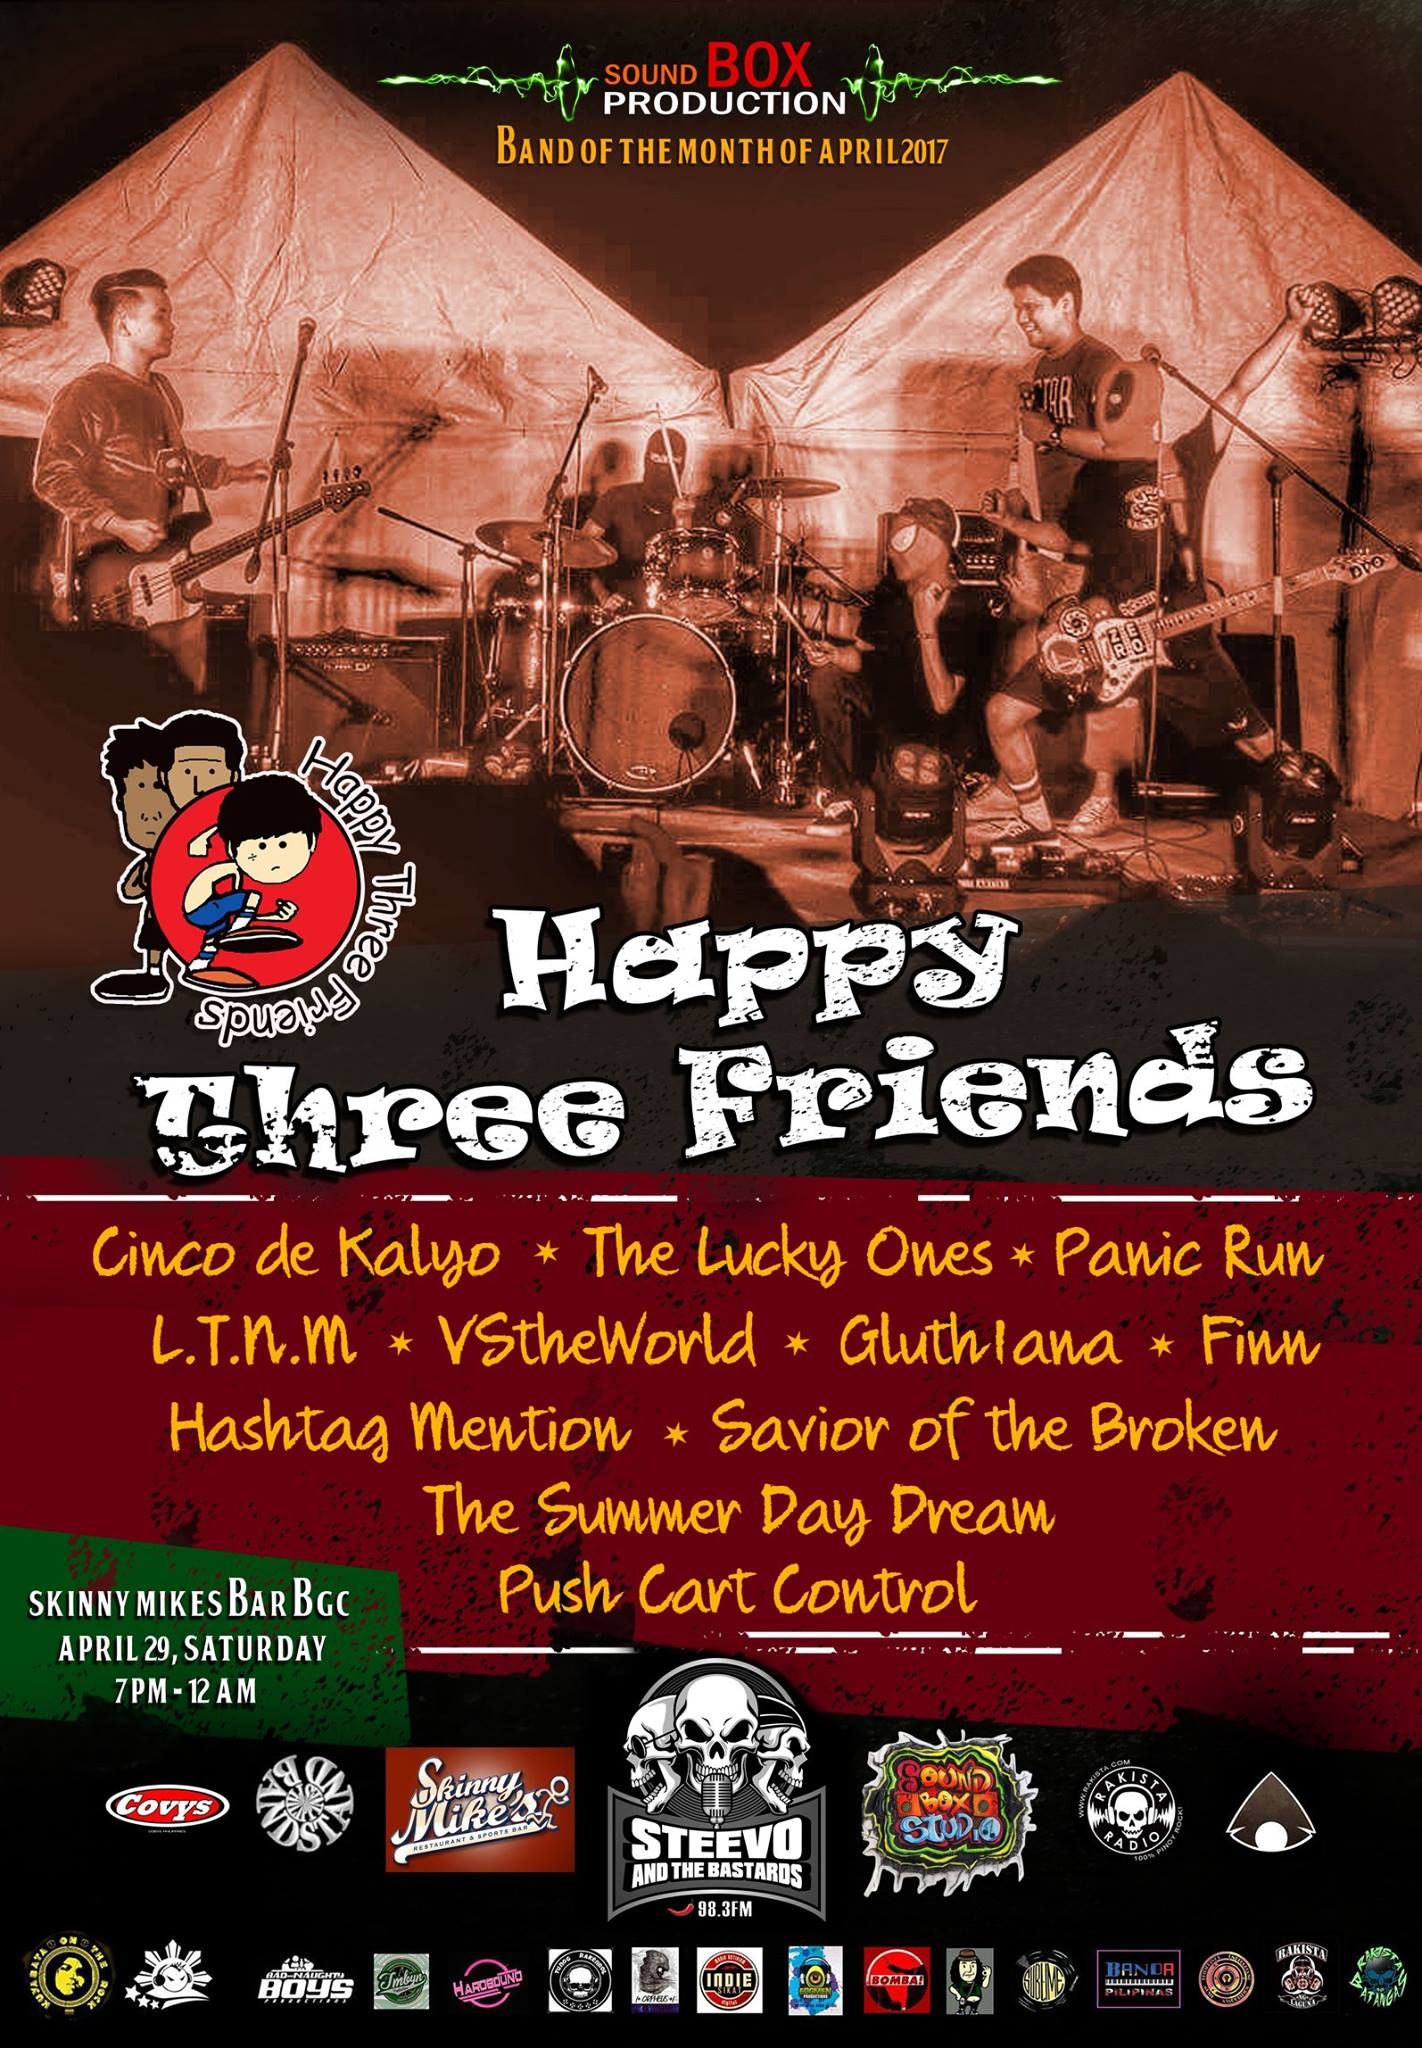 Happy Three Friends – Sound Box Band of the Month – April 2017